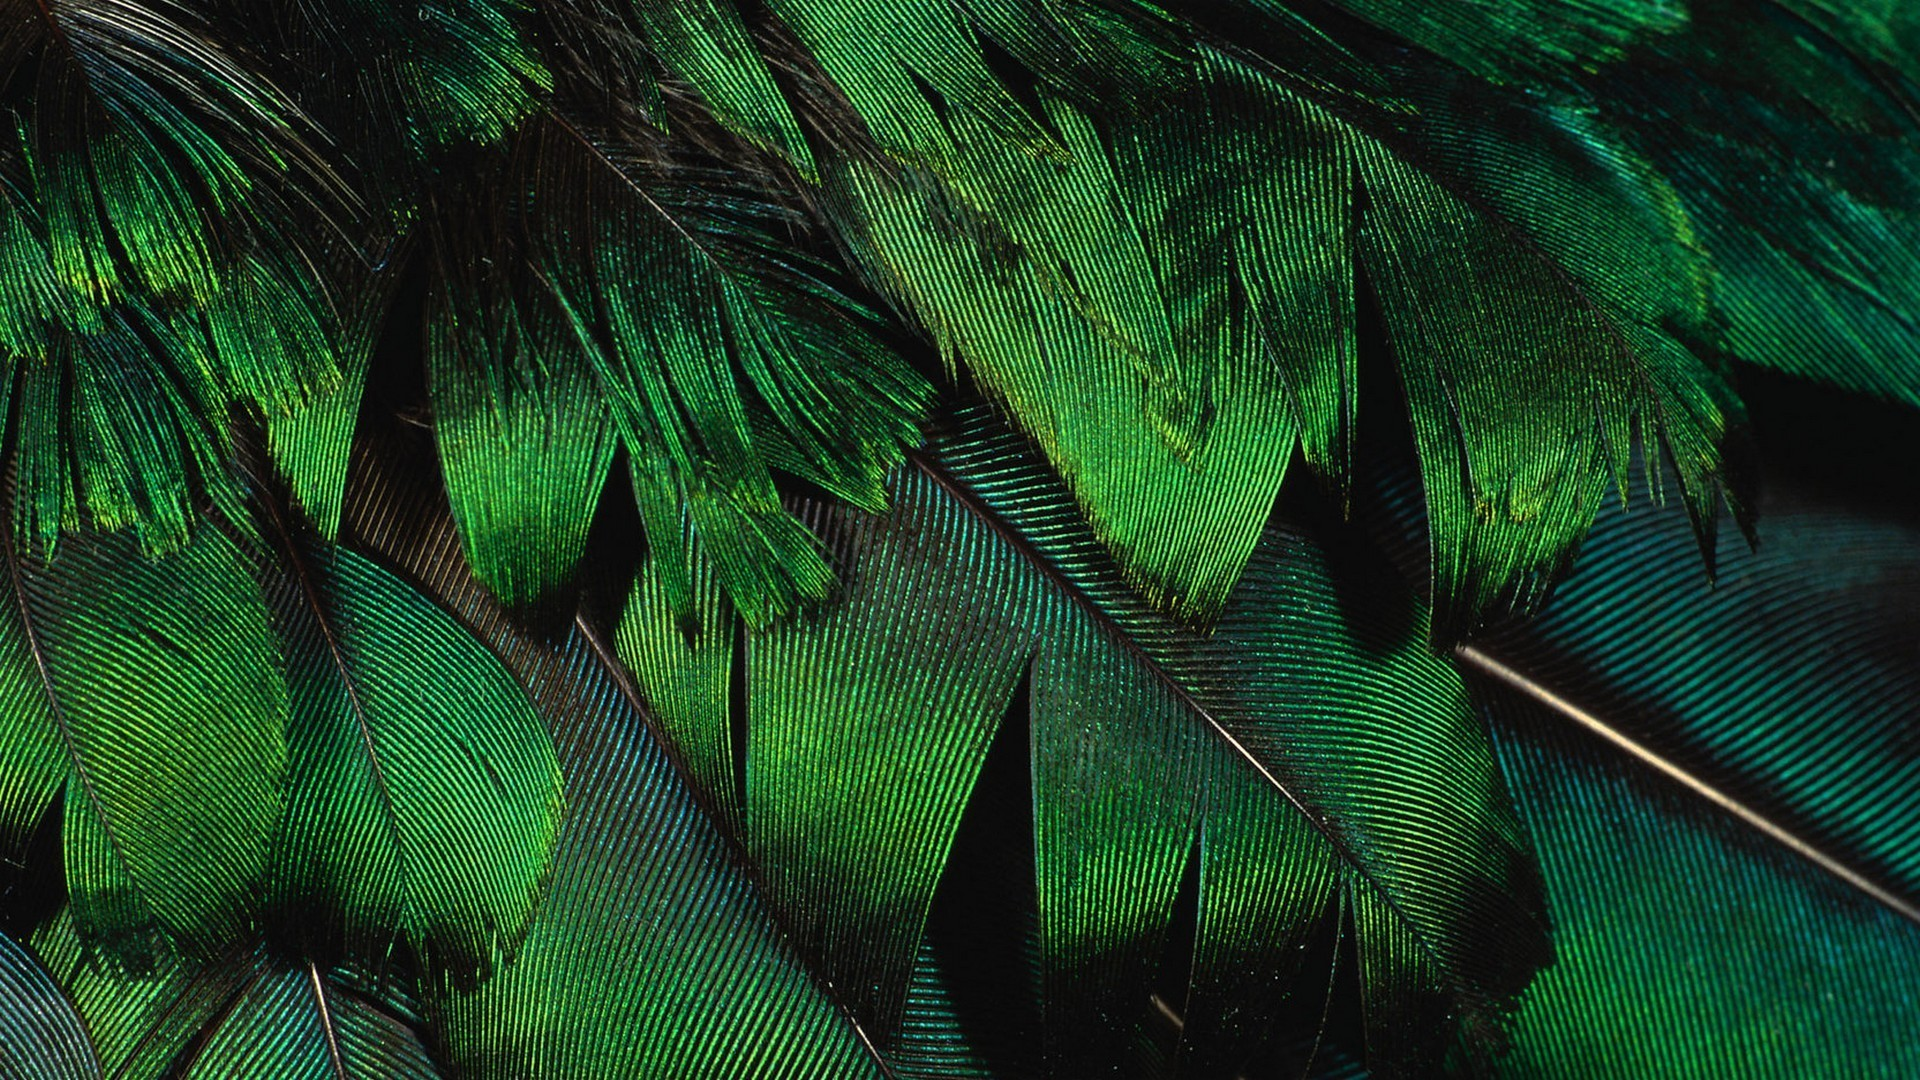 nature feathers macro iridescence HD Wallpaper